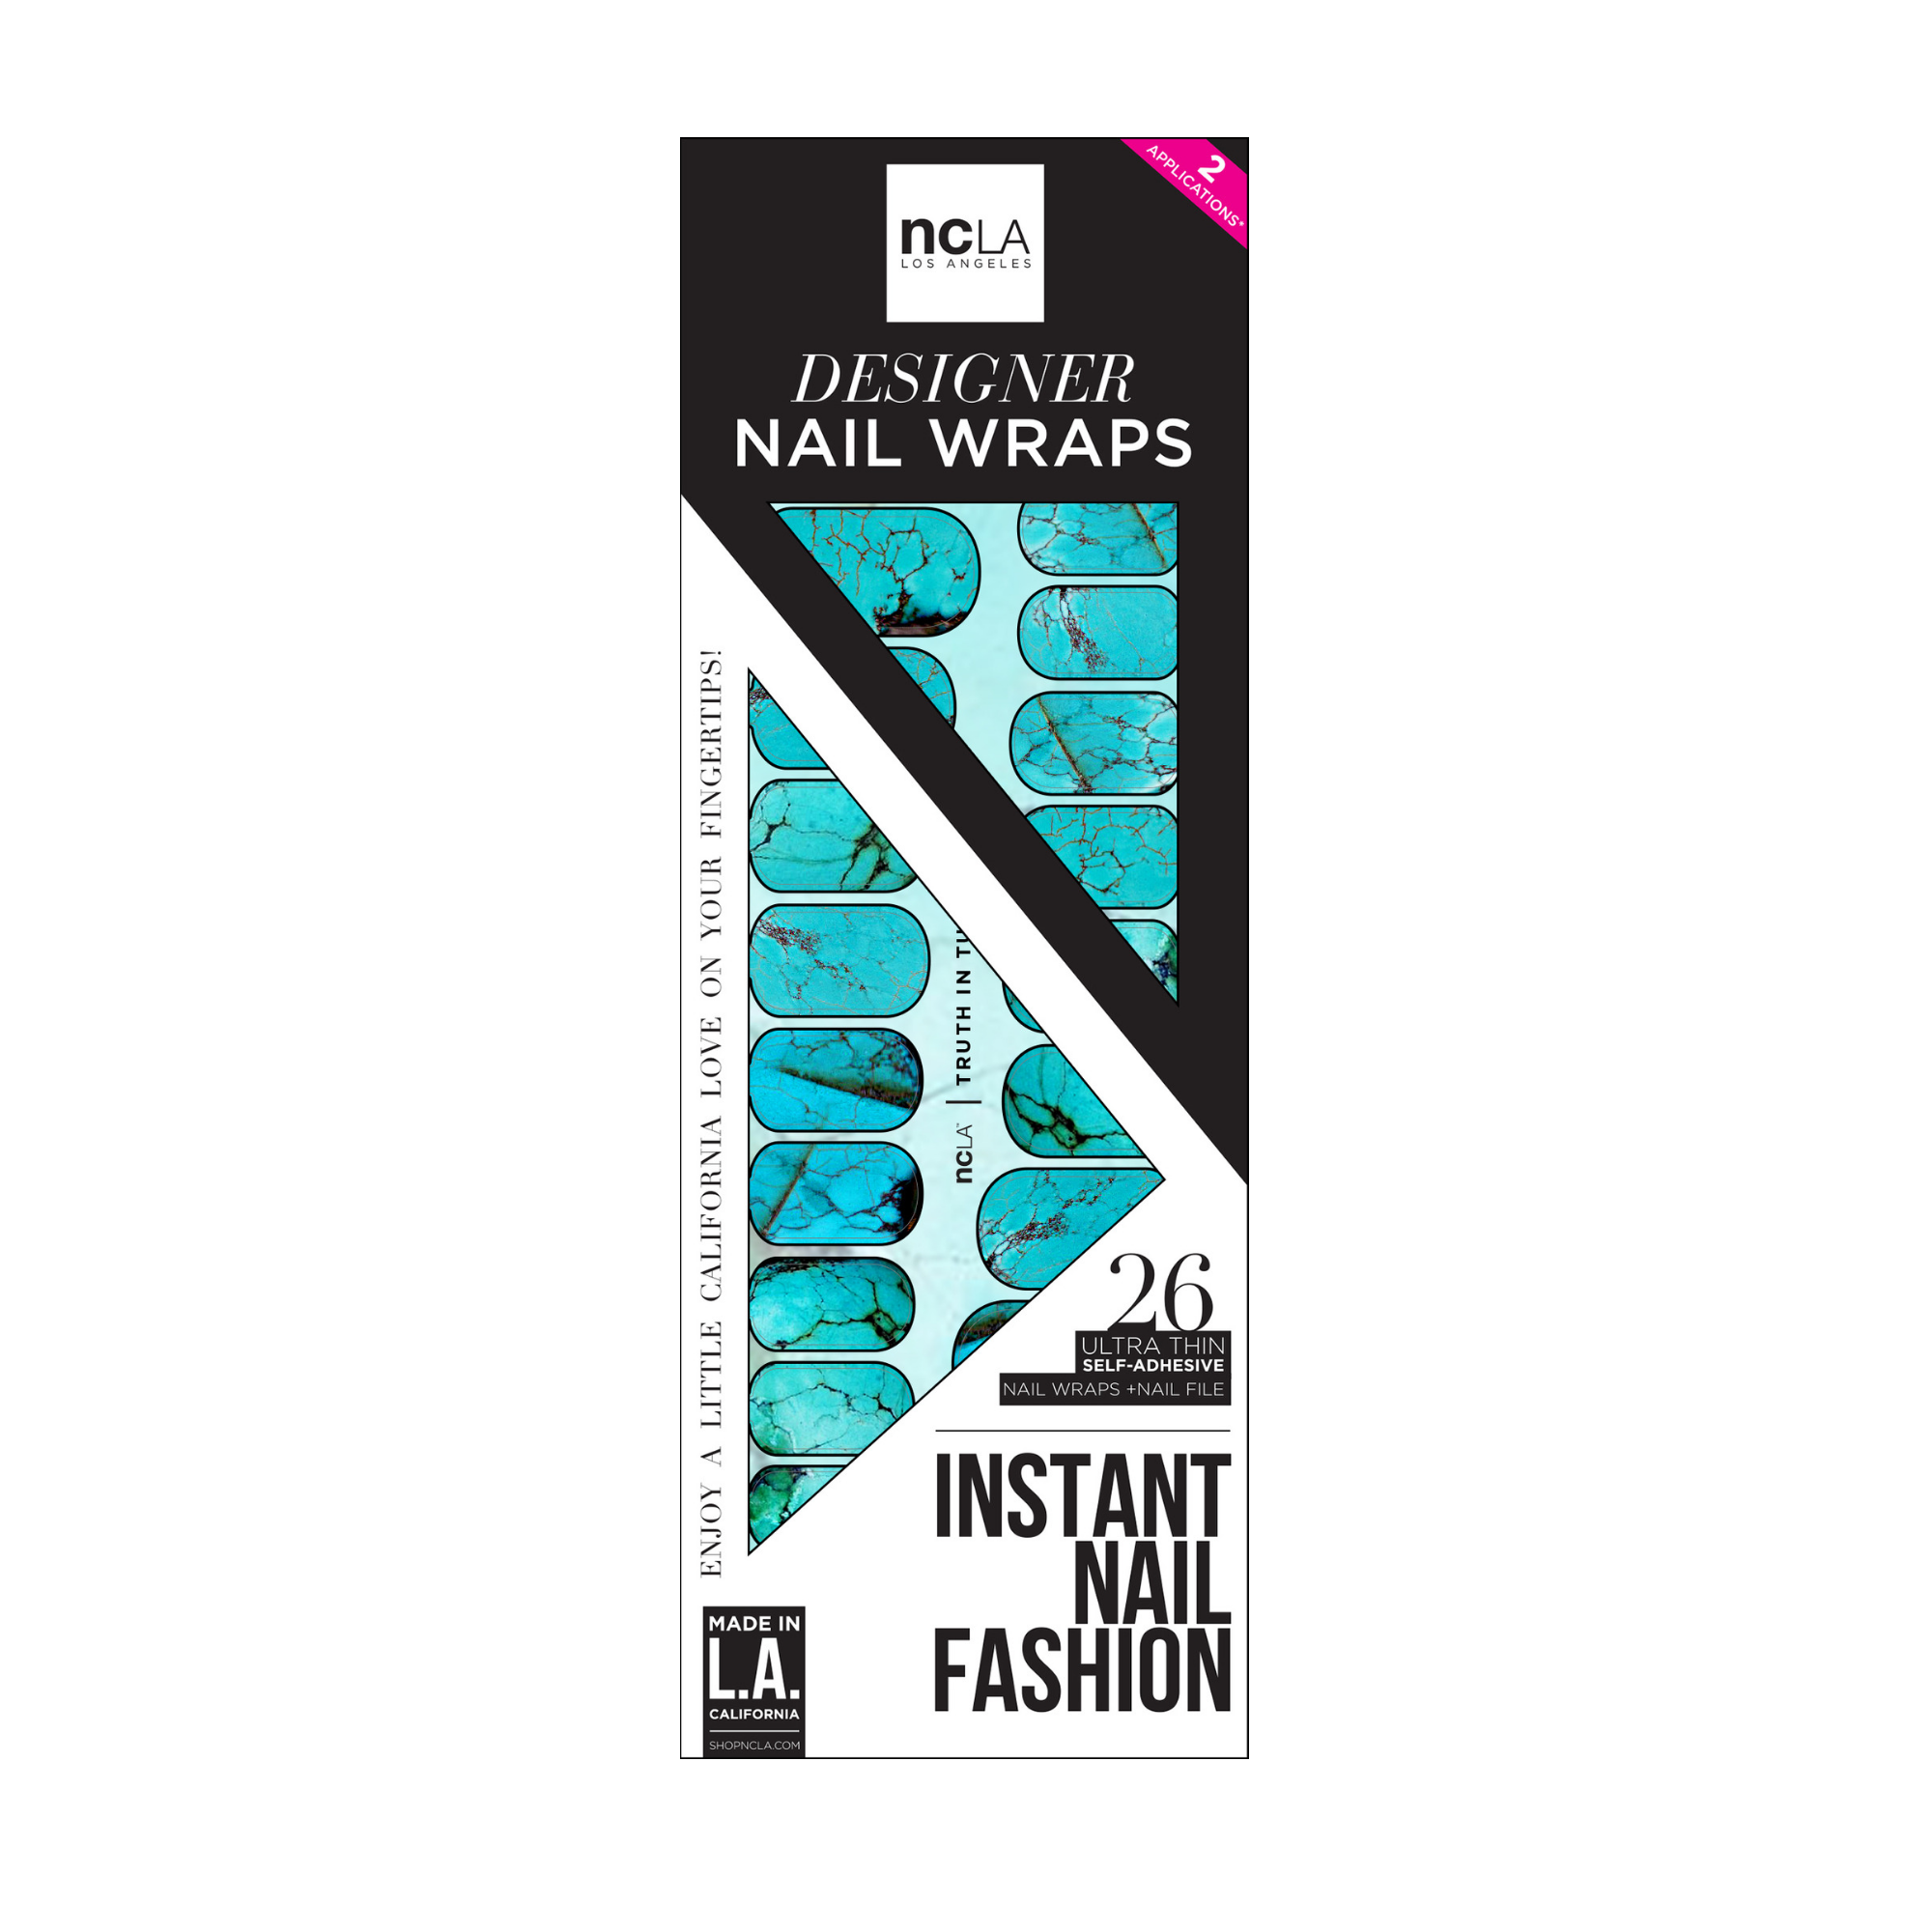 NCLA Nail Wraps Truth In Turquoise